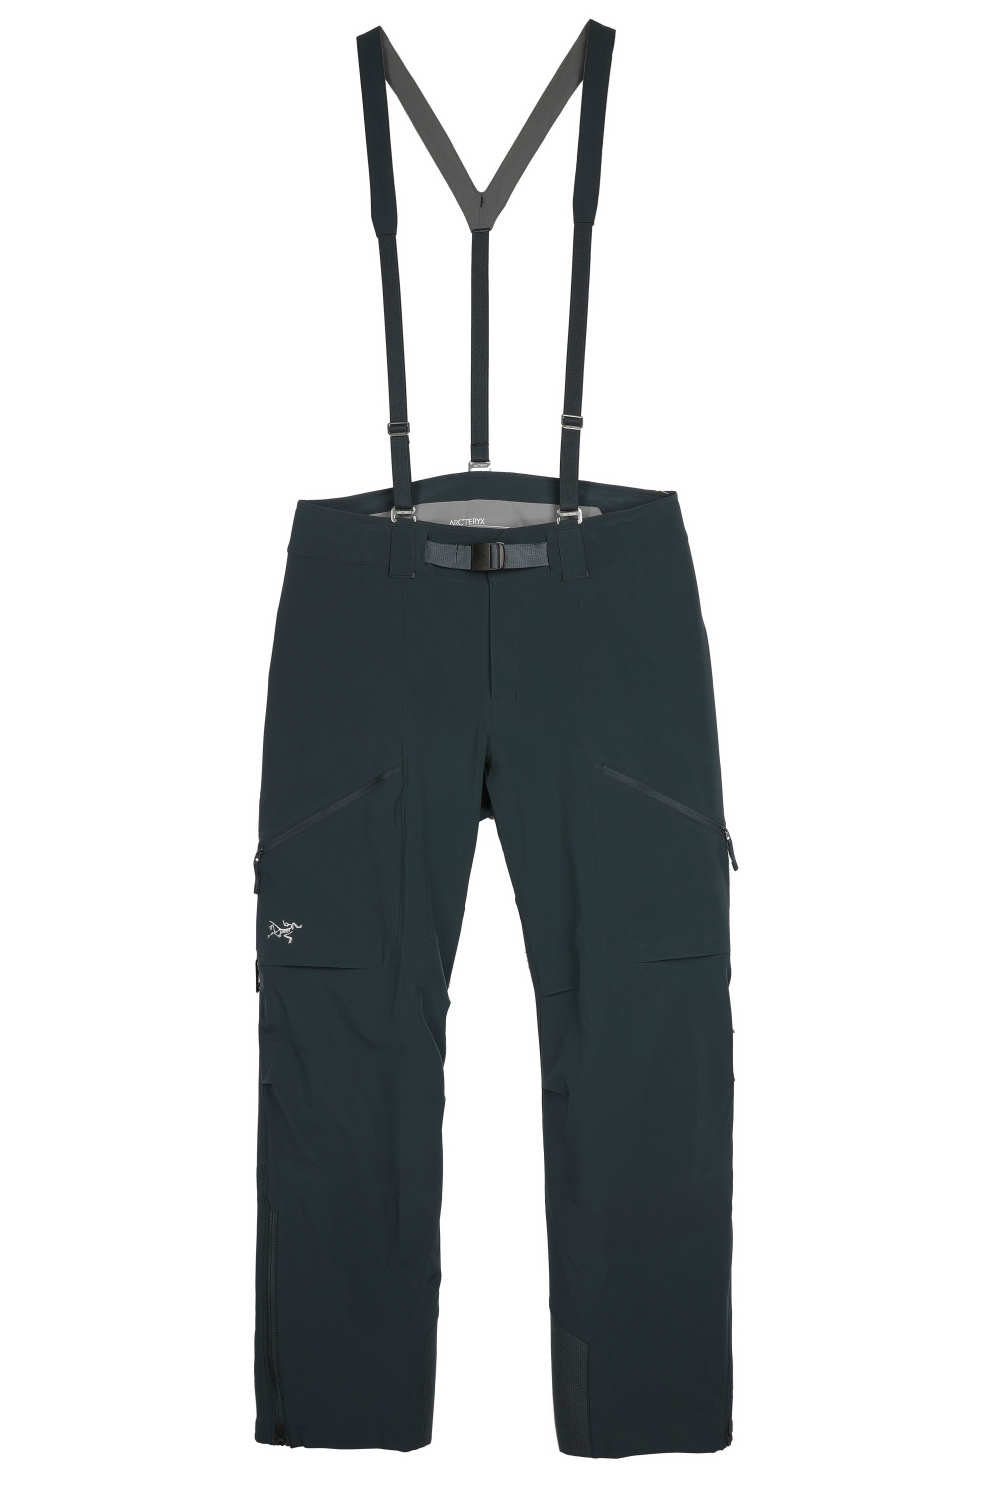 Main product image: Rush FL Pant Men's